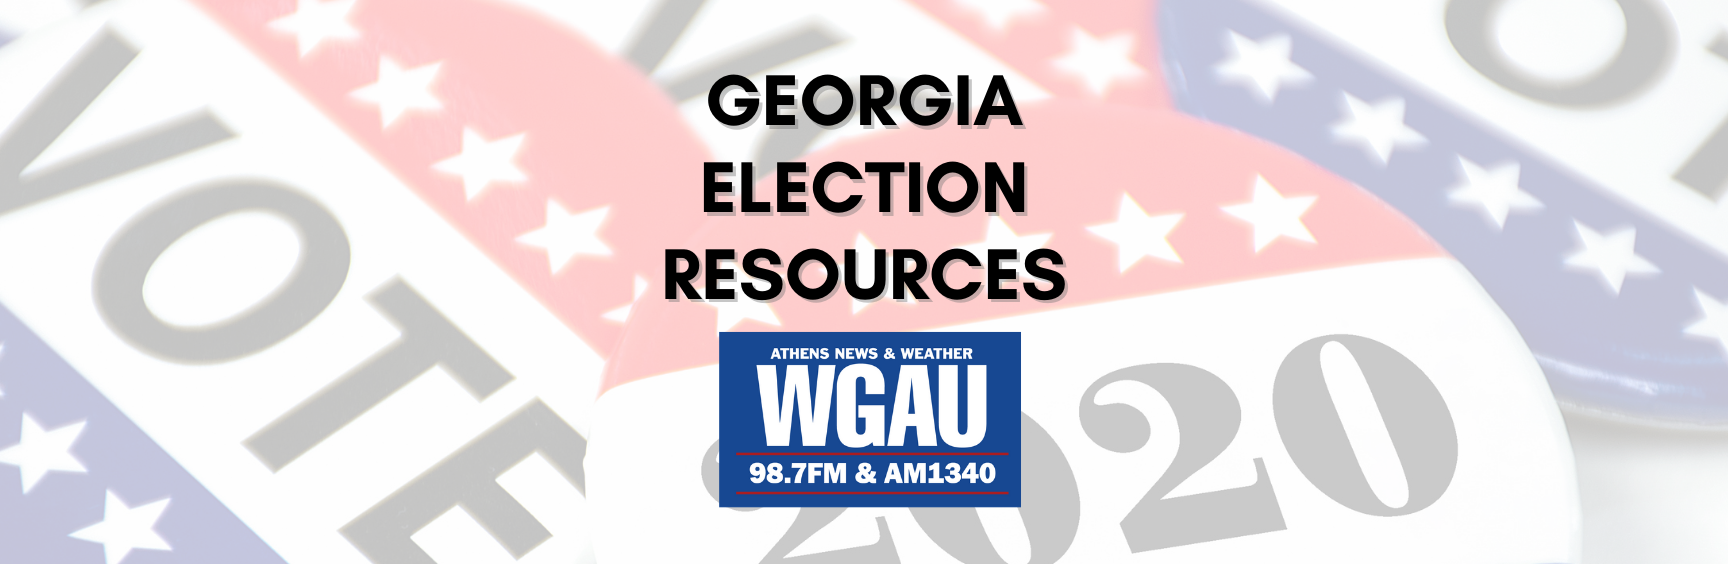 WGAU Election Guide 2020